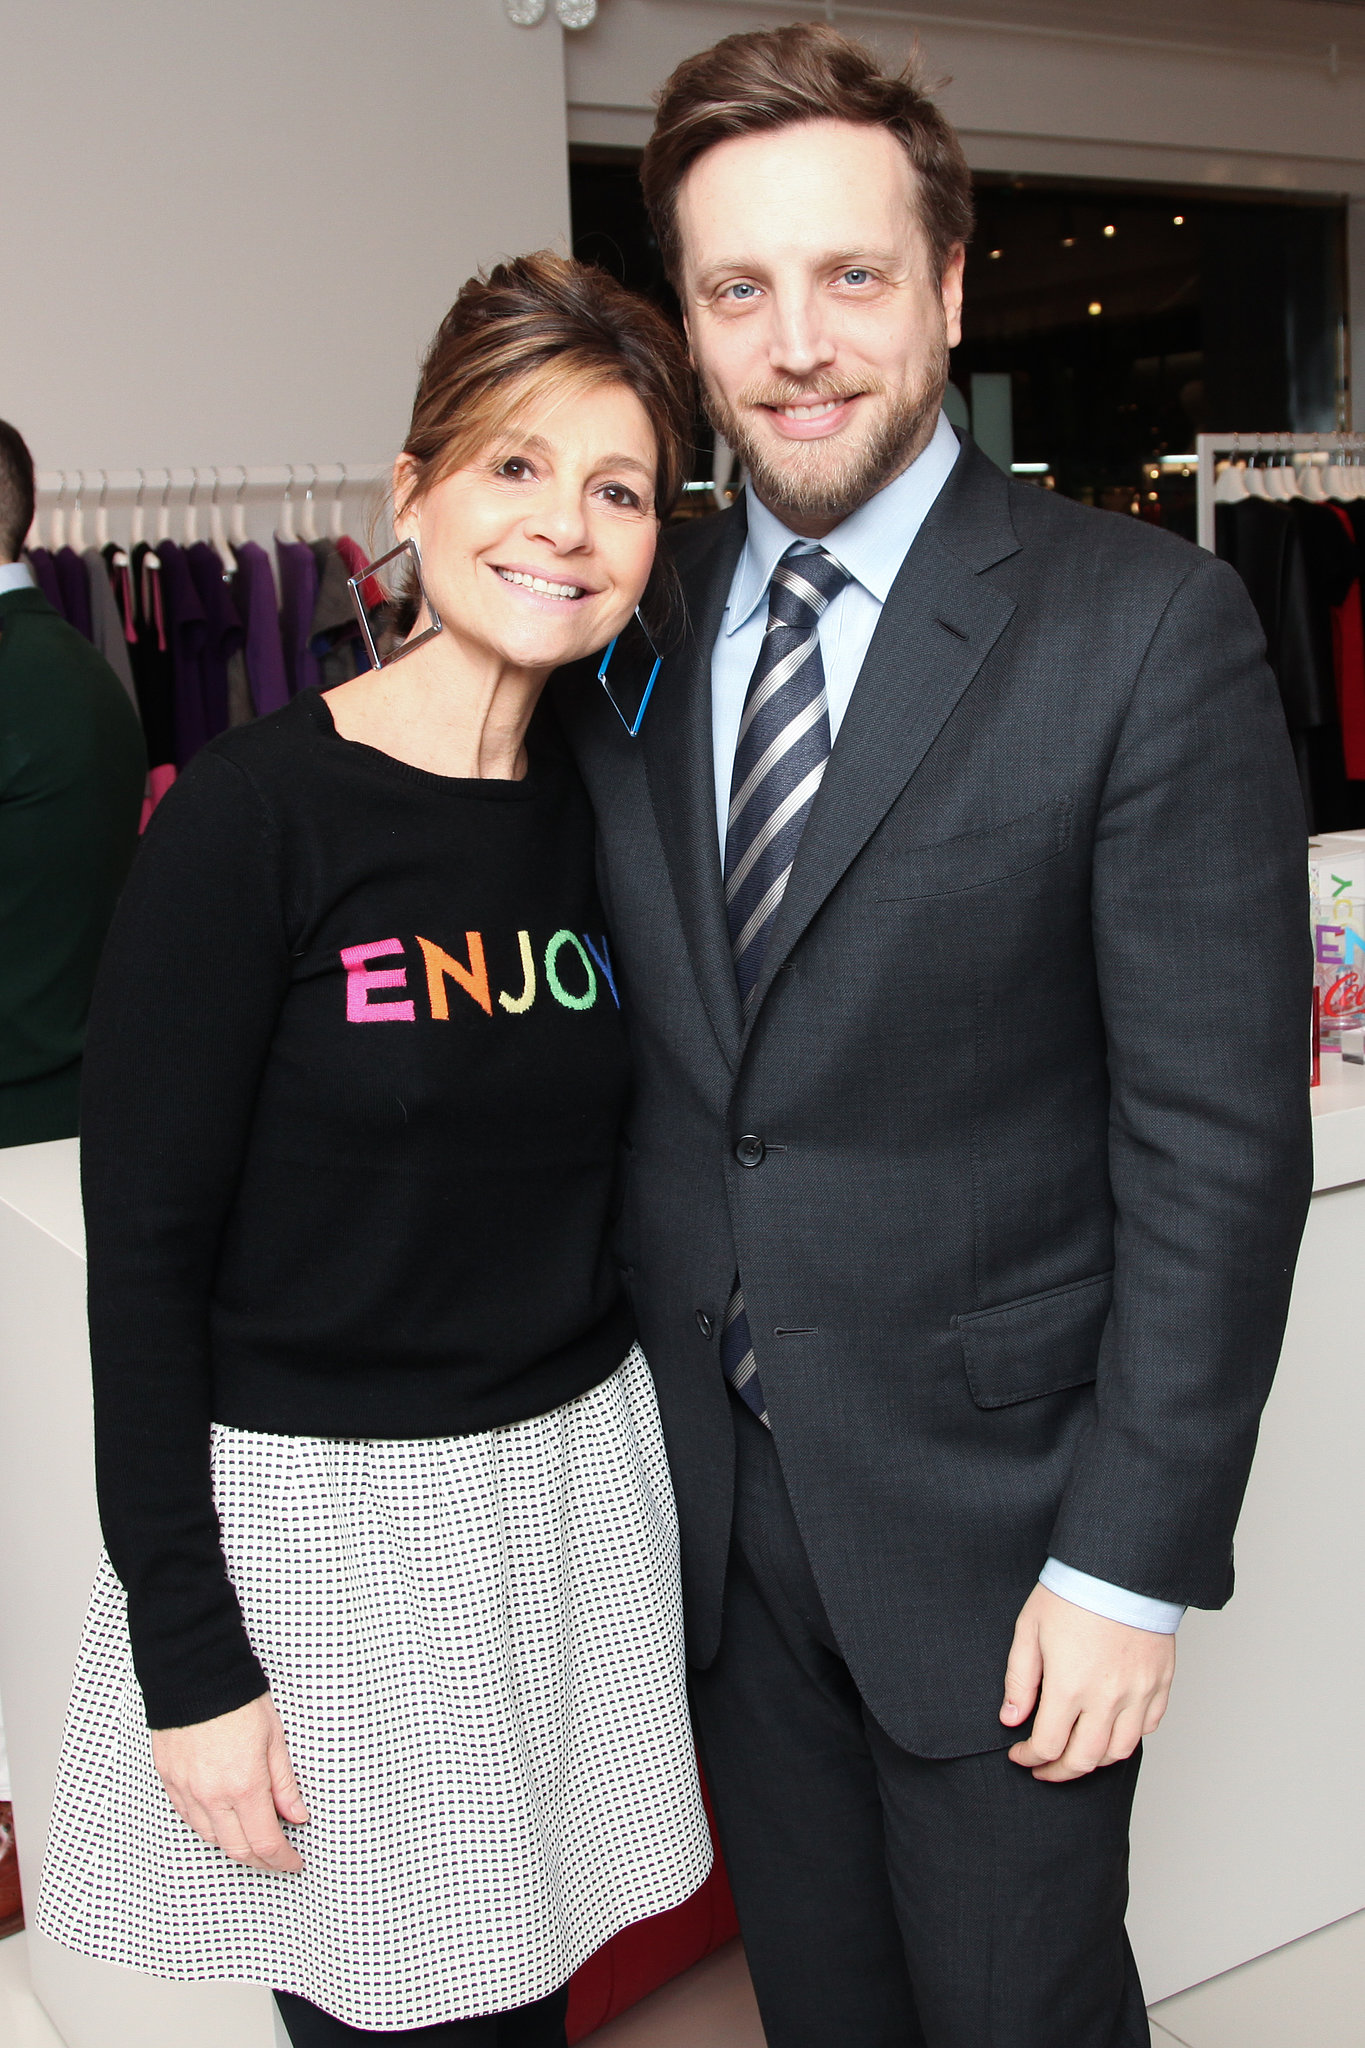 Lisa Perry and Ariel Foxman at Lisa Perry's holiday shopping event with Coca-Cola.